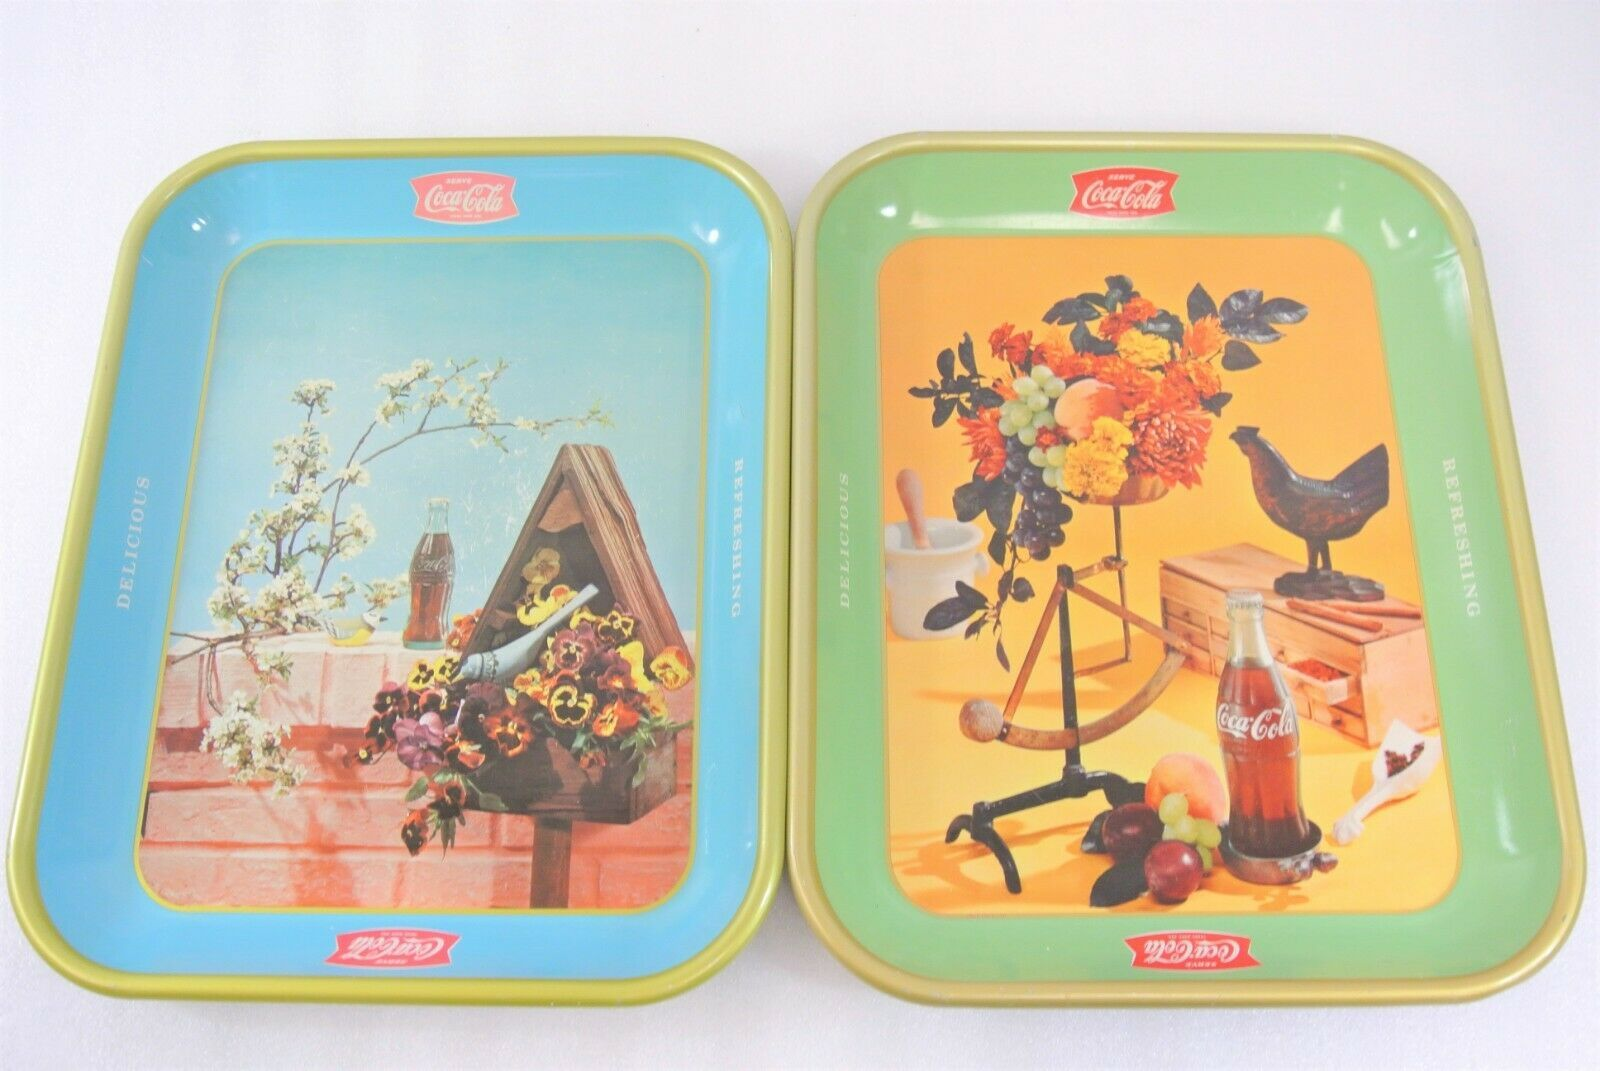 Primary image for Coca Cola Trays Lot of 2 Vintage Serving Trays Delicious Refreshing Bird Flowers